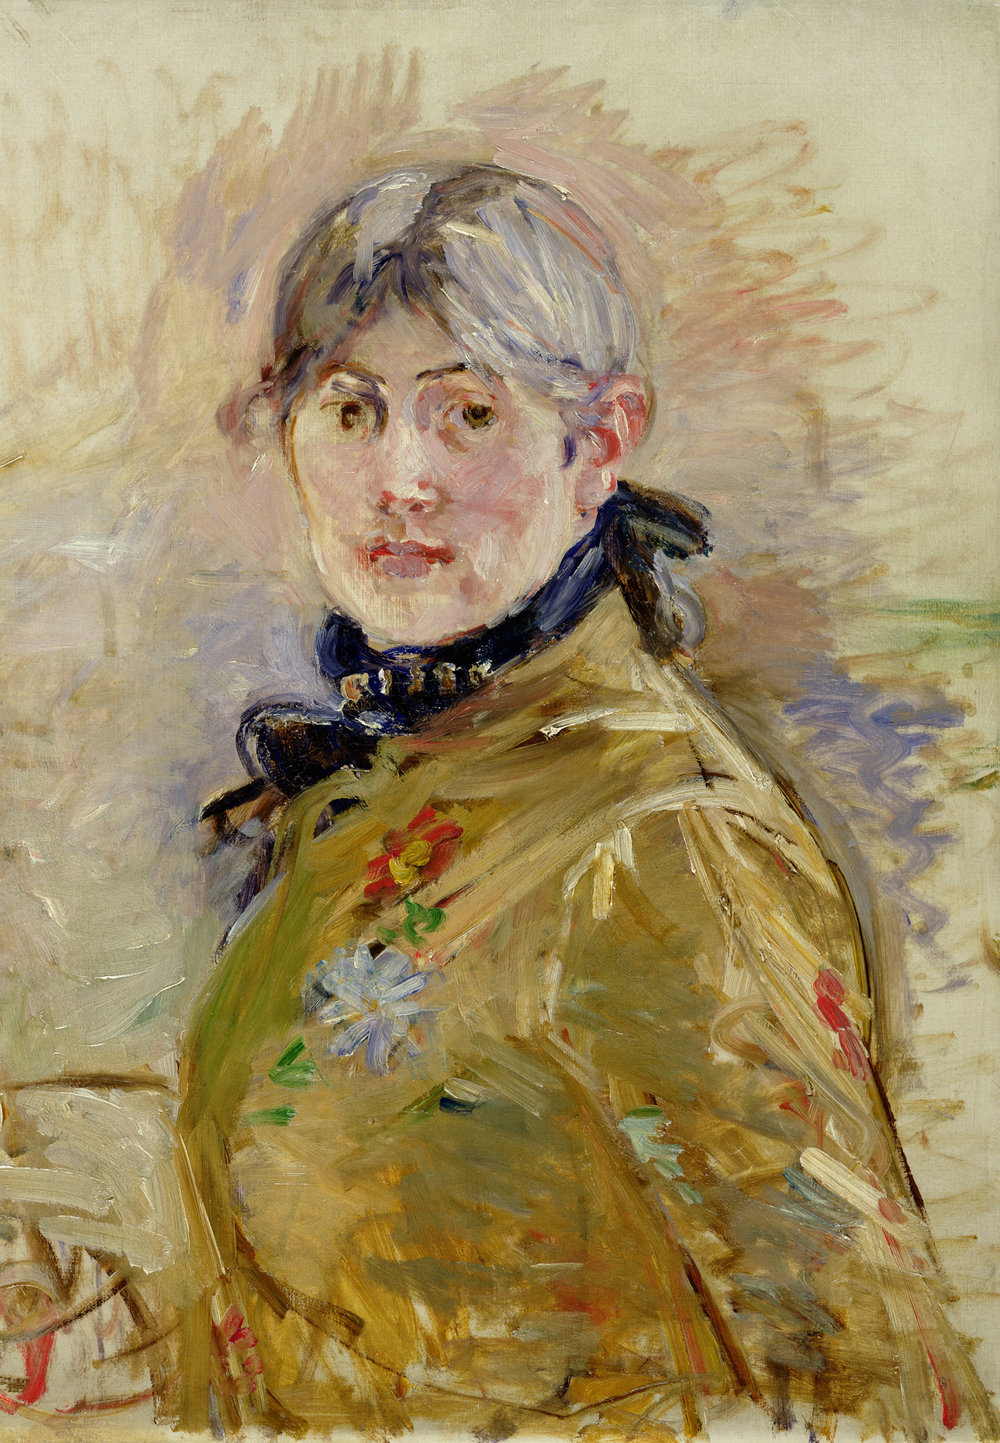 The art world finally caught up with Linda. In the past year a retrospective of her work, Berthe Morisot, Woman Impressionist, traveled around the world. Read about it here. The exhibit will be at the Musee d'Orsay in Paris this summer. -